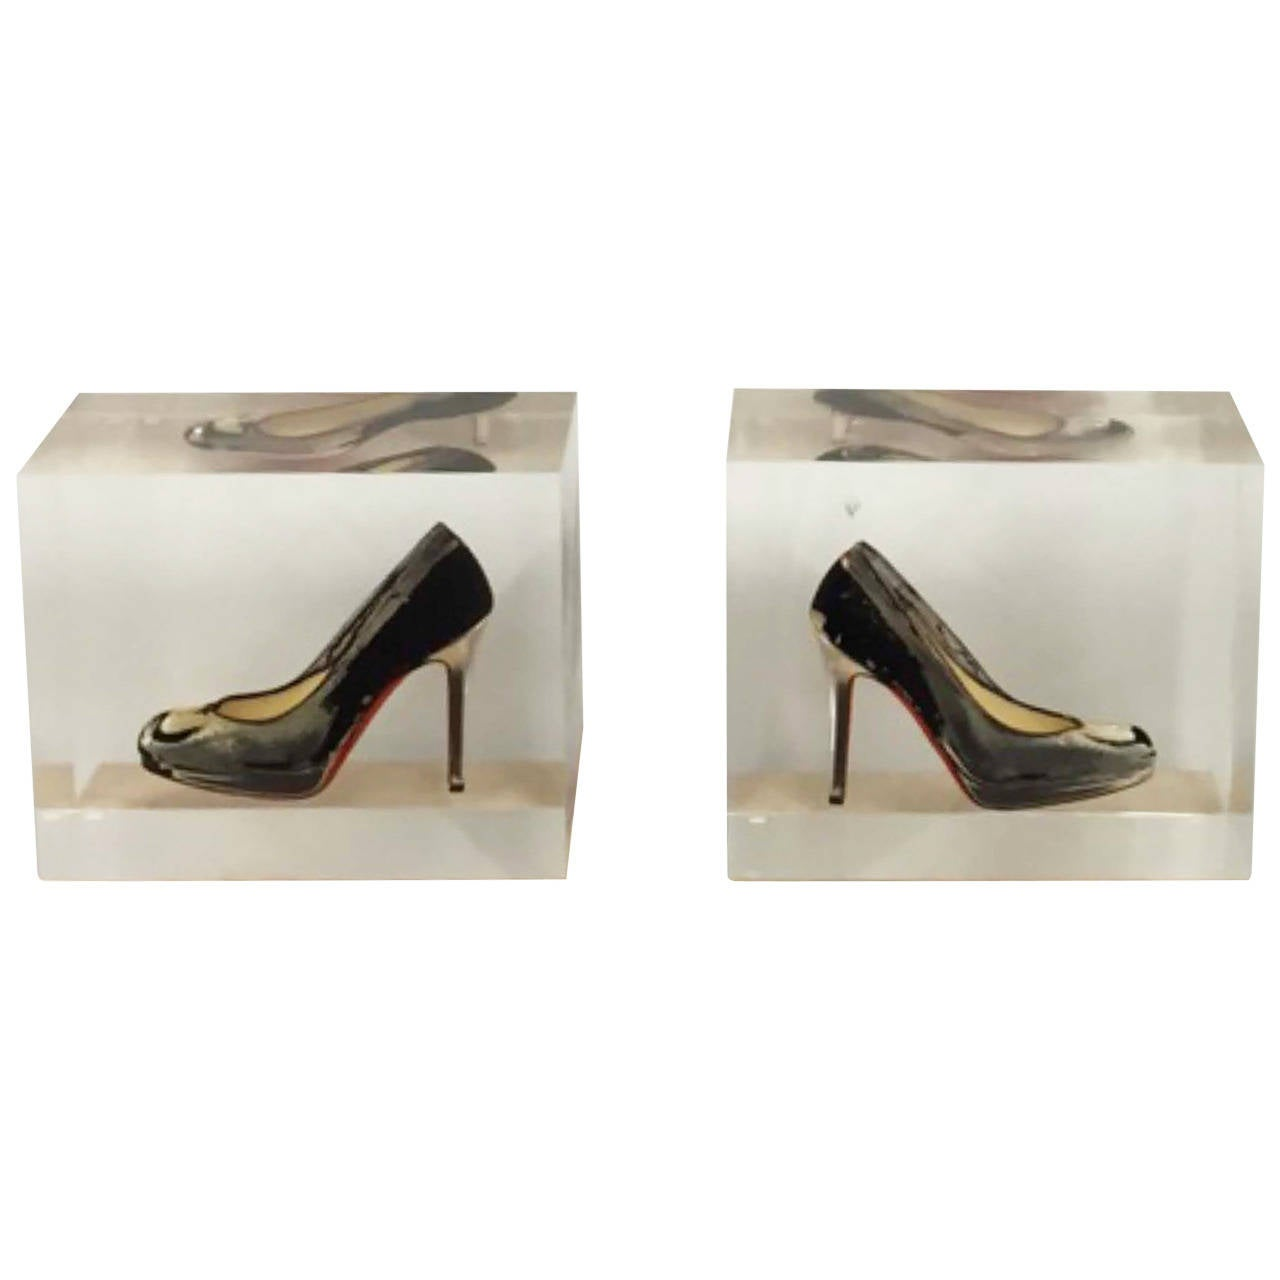 """Contemporary American Sculpture """"Unattainable Louboutin Pair"""" by Ray Geary, 2014"""